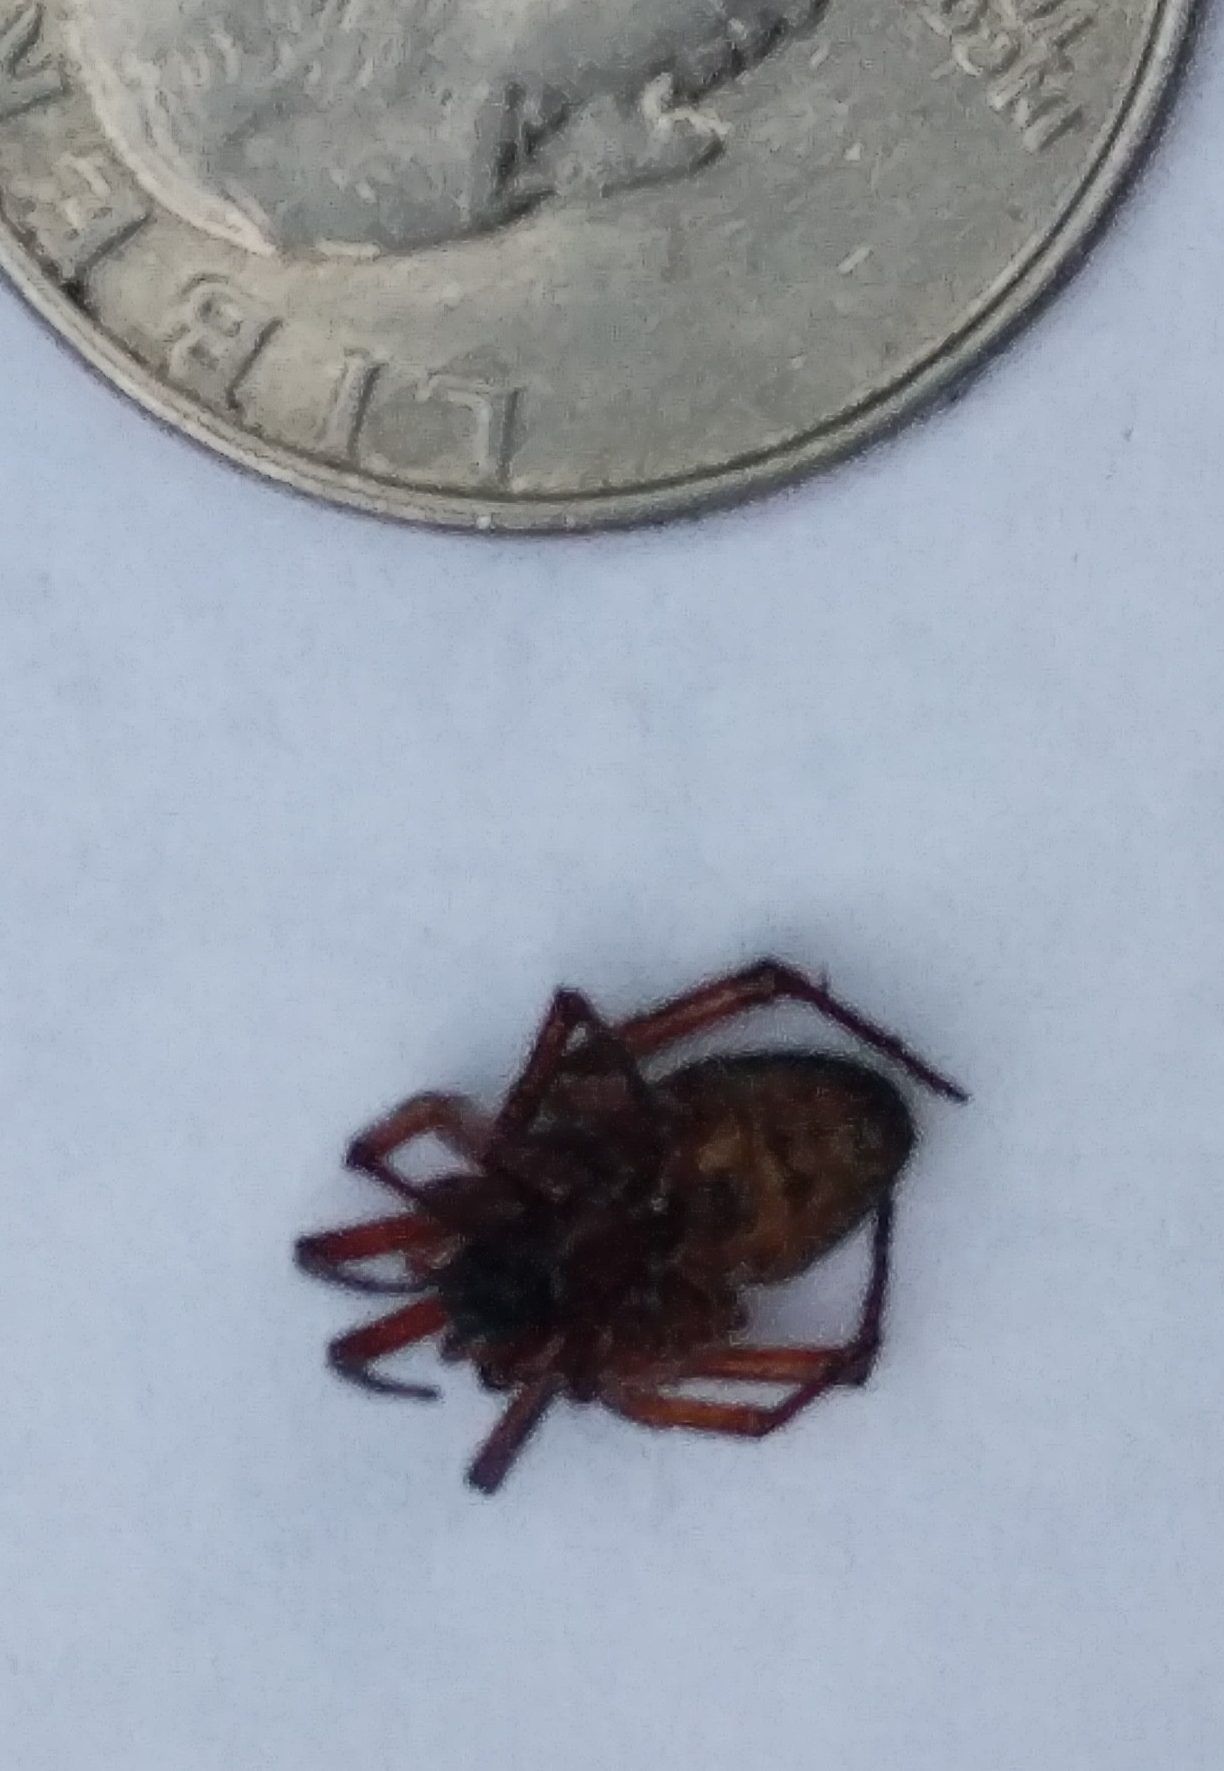 Picture of Steatoda nobilis (Noble False Widow) - Ventral